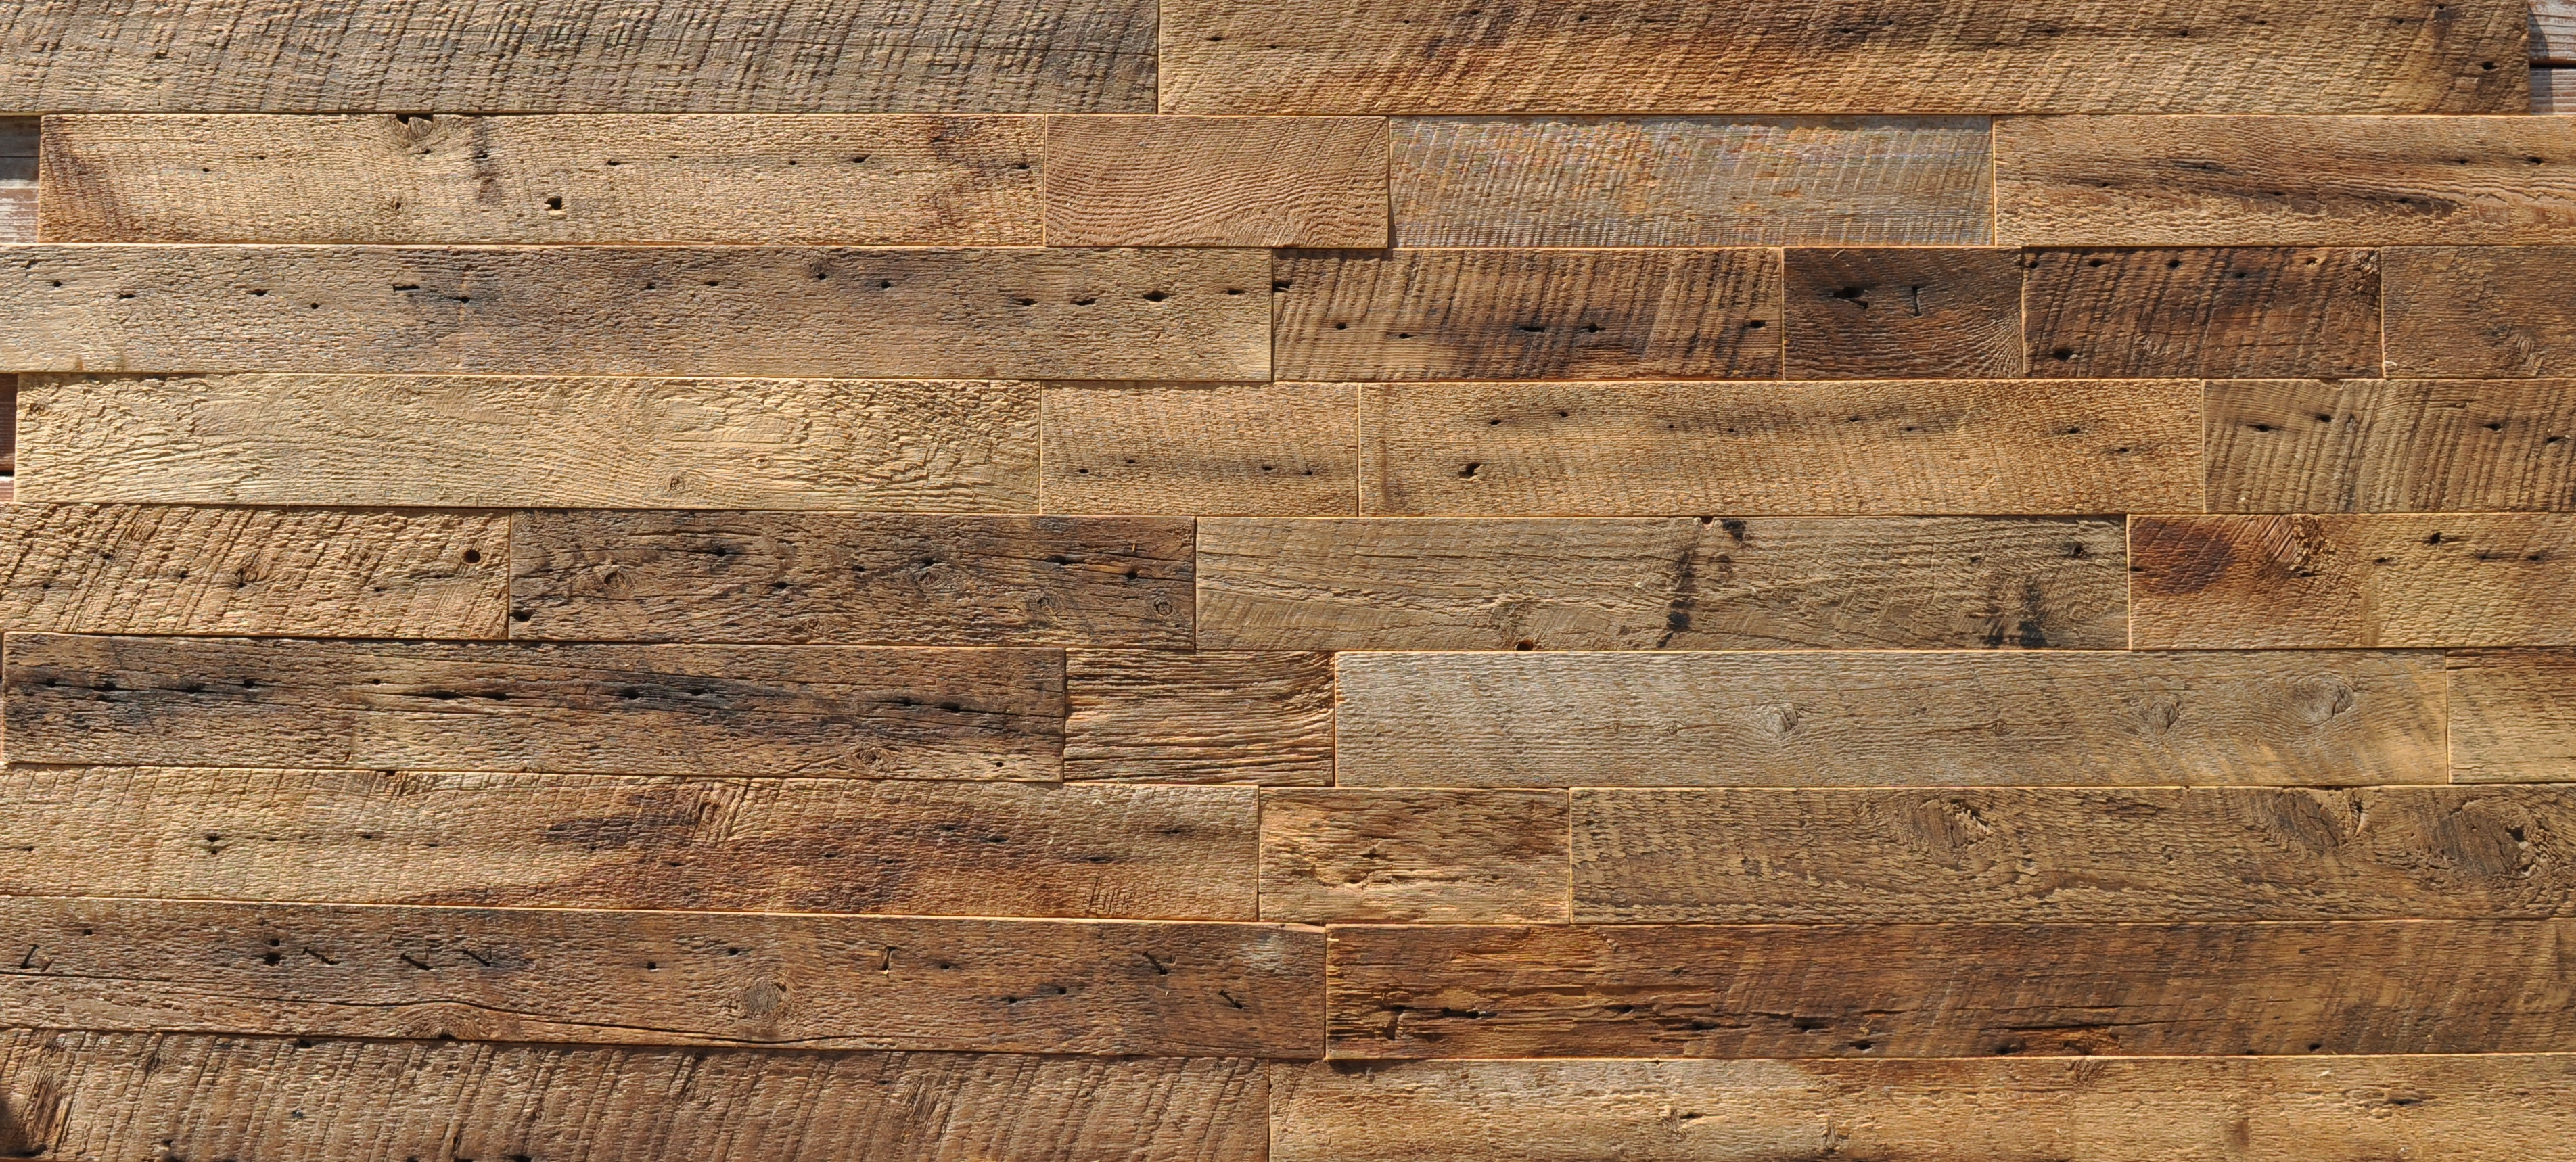 waxing hardwood floors yourself of diy reclaimed wood accent wall brown waxed and sealed 3 5 inch wide with home diy walls